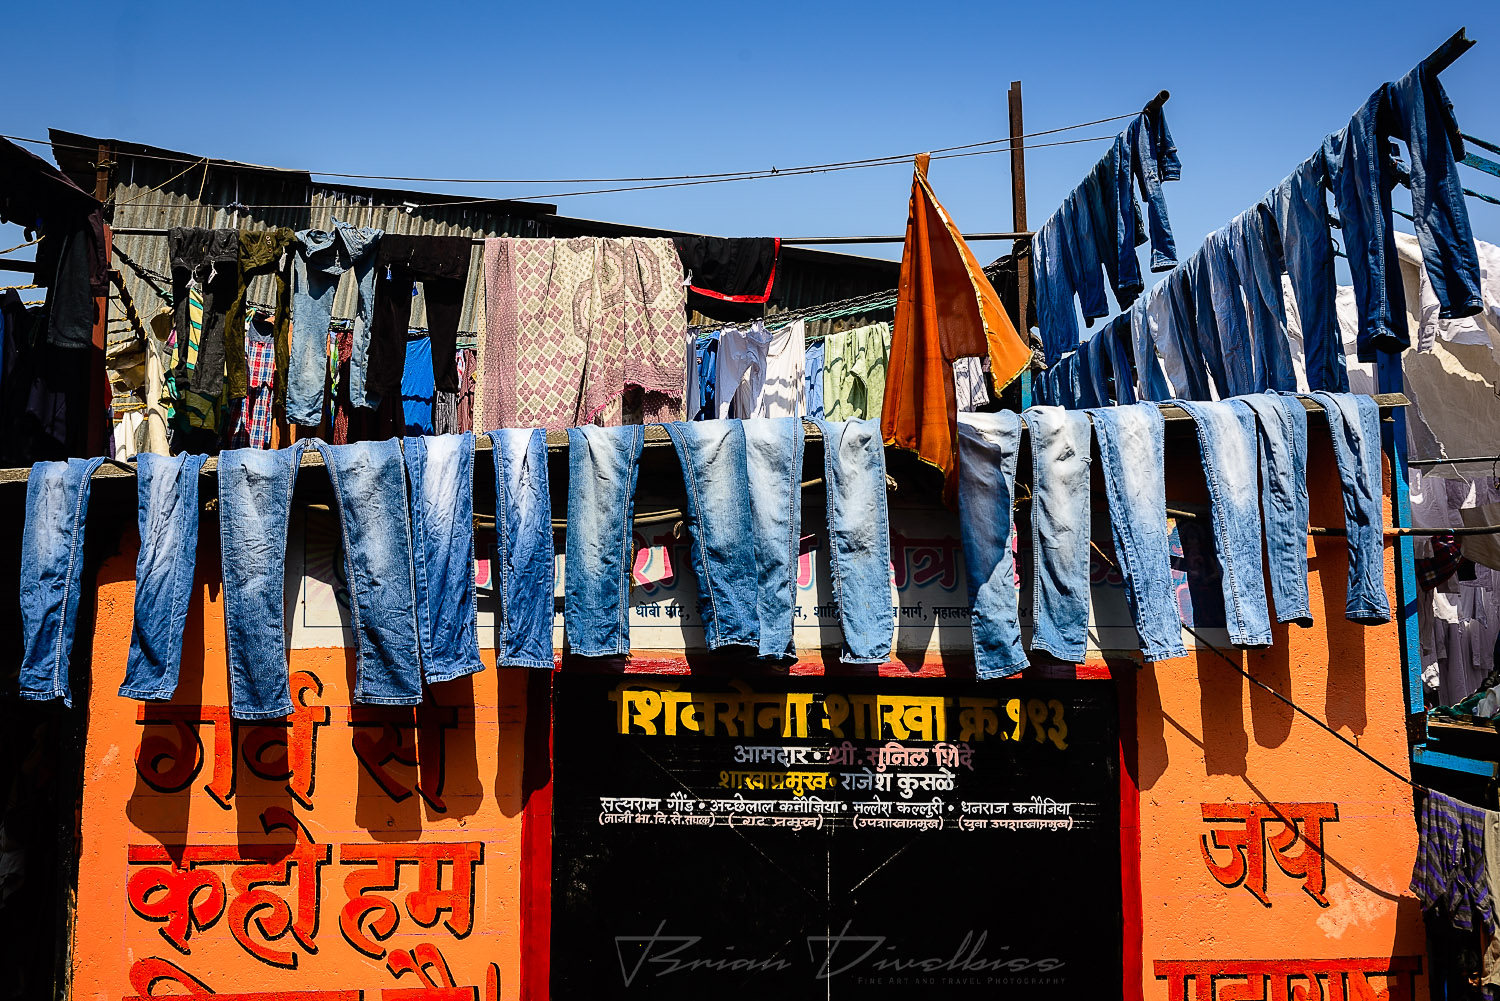 Row of jeans hanging outdoors at Dhobi Ghat in Mumbai, India.